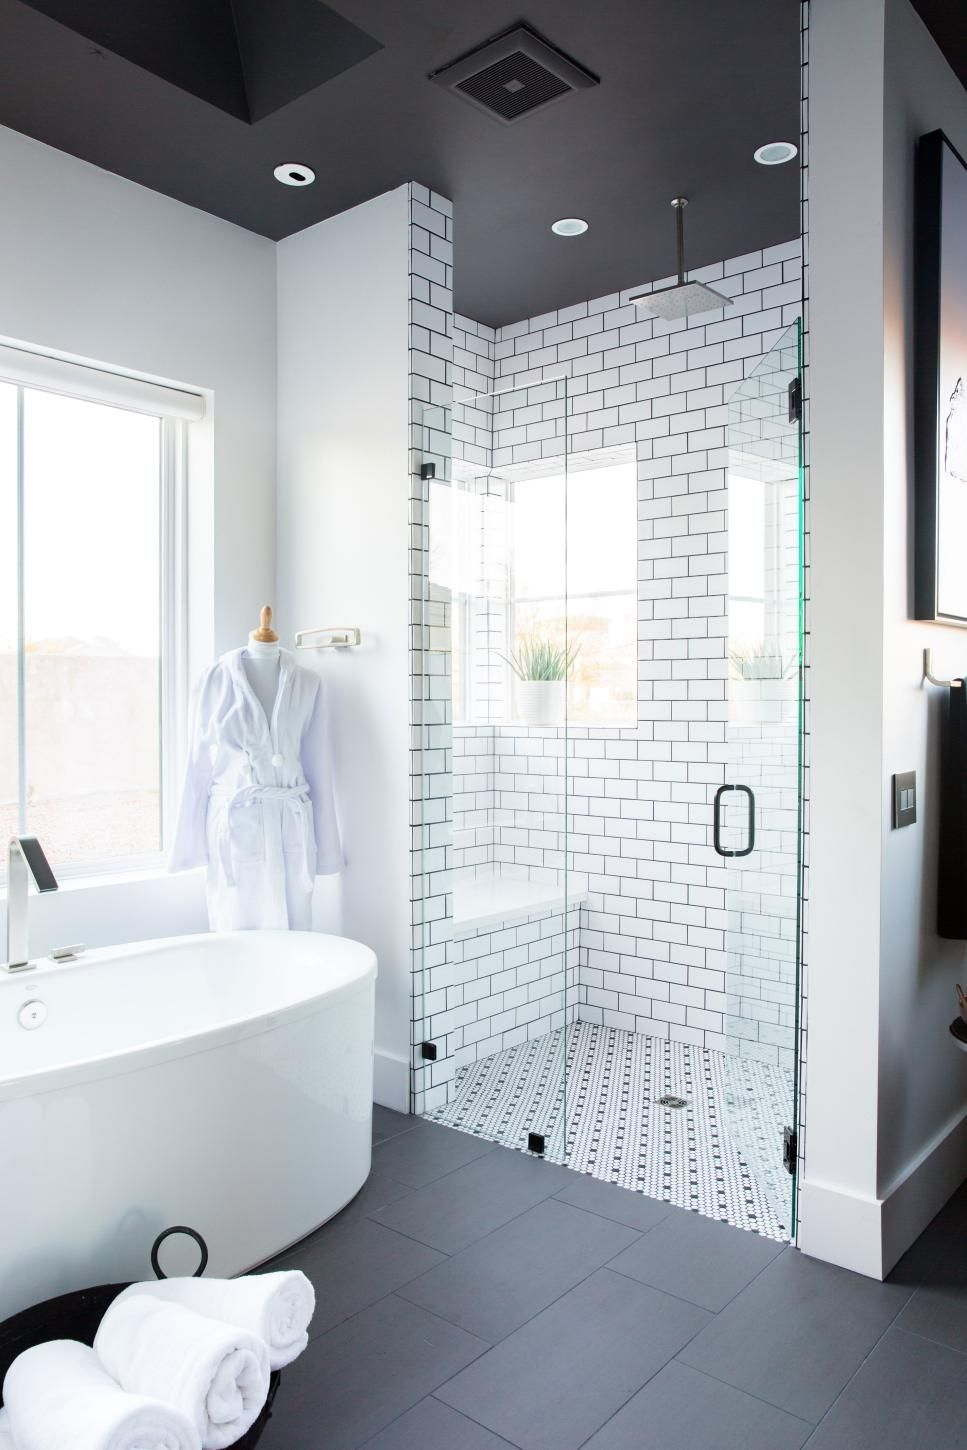 This Luxurious Master Bath With High Tech Features For The Ultimate Pampering Experience Has In 2020 Bathroom Remodel Shower Bathrooms Remodel Bathroom Remodel Master